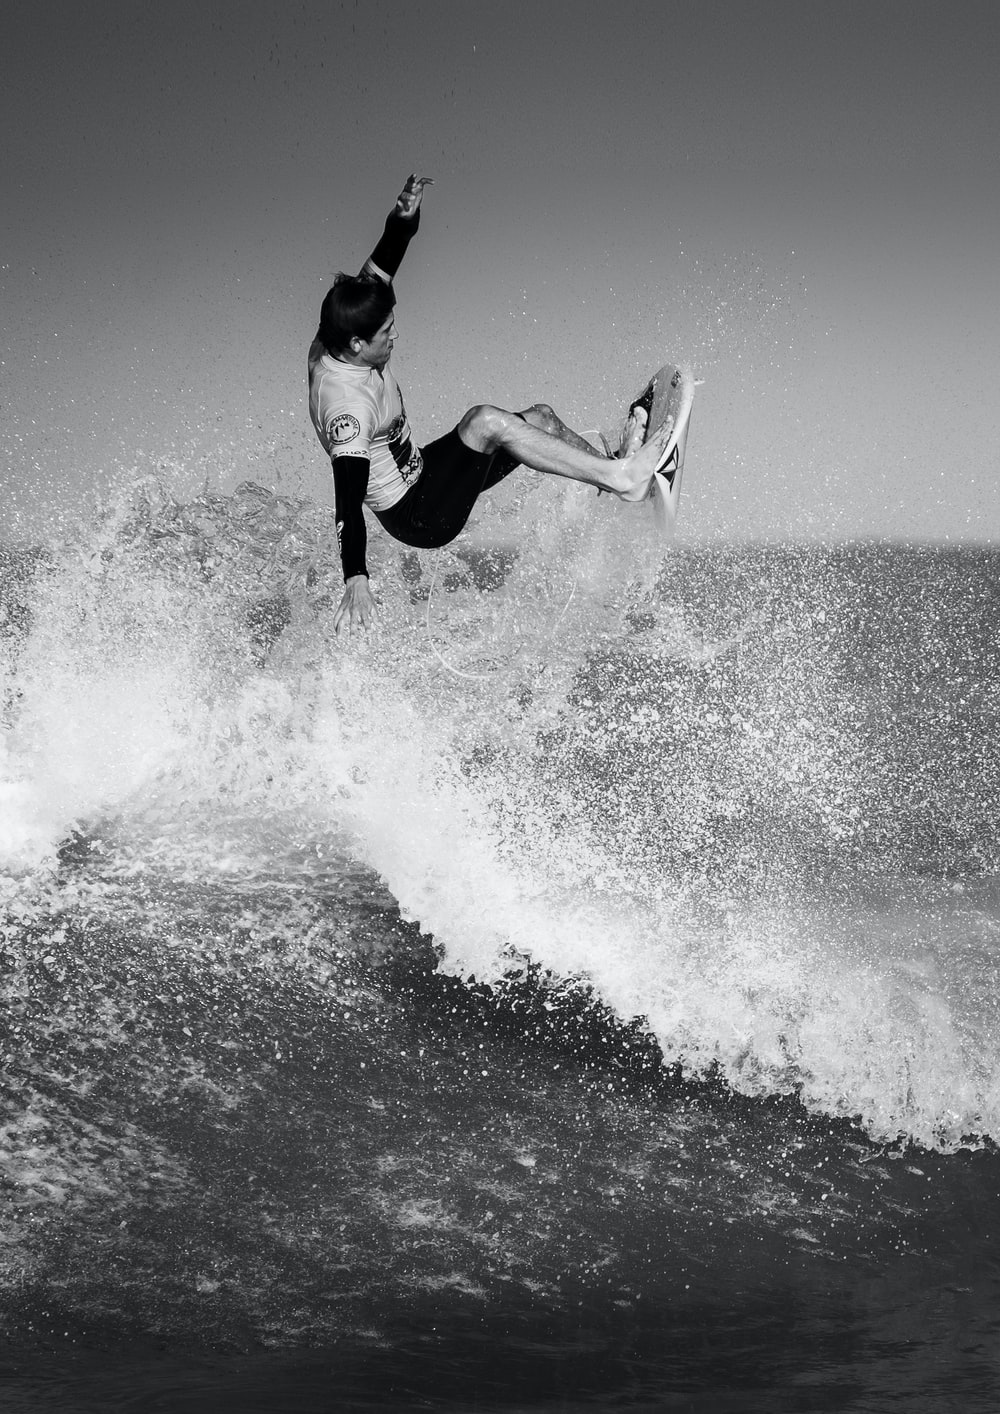 black and white photo of man surfing